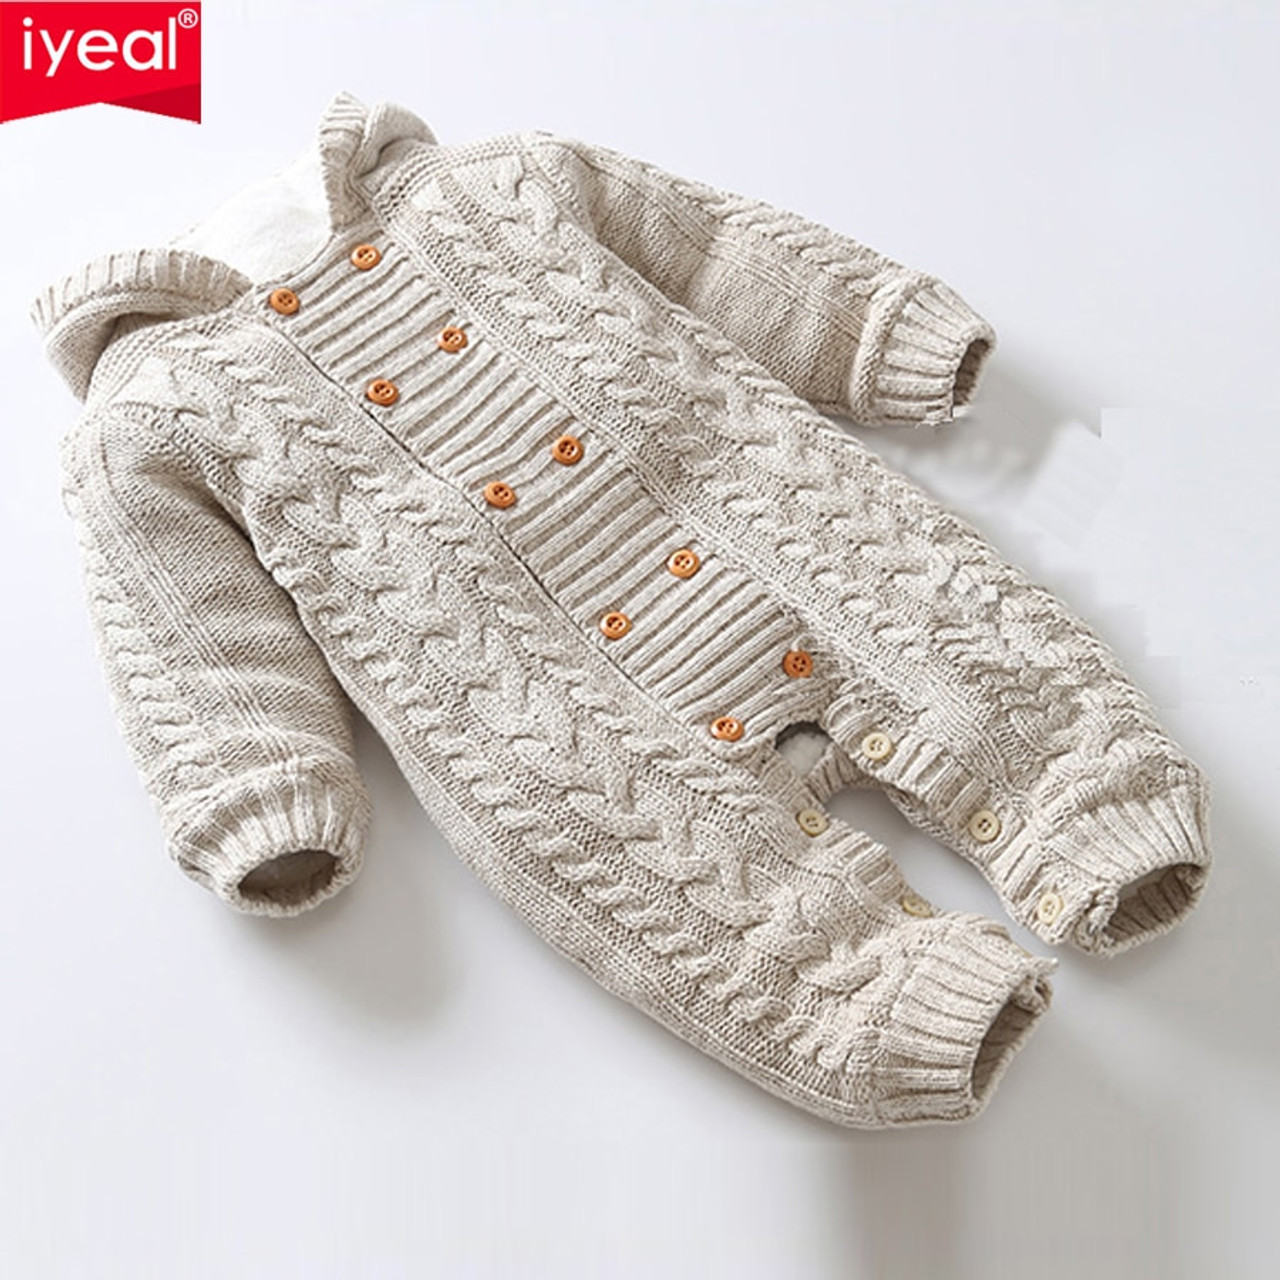 efcf6e4ed IYEAL Thick Warm Infant Baby Rompers Winter Clothes Newborn Baby Boy ...